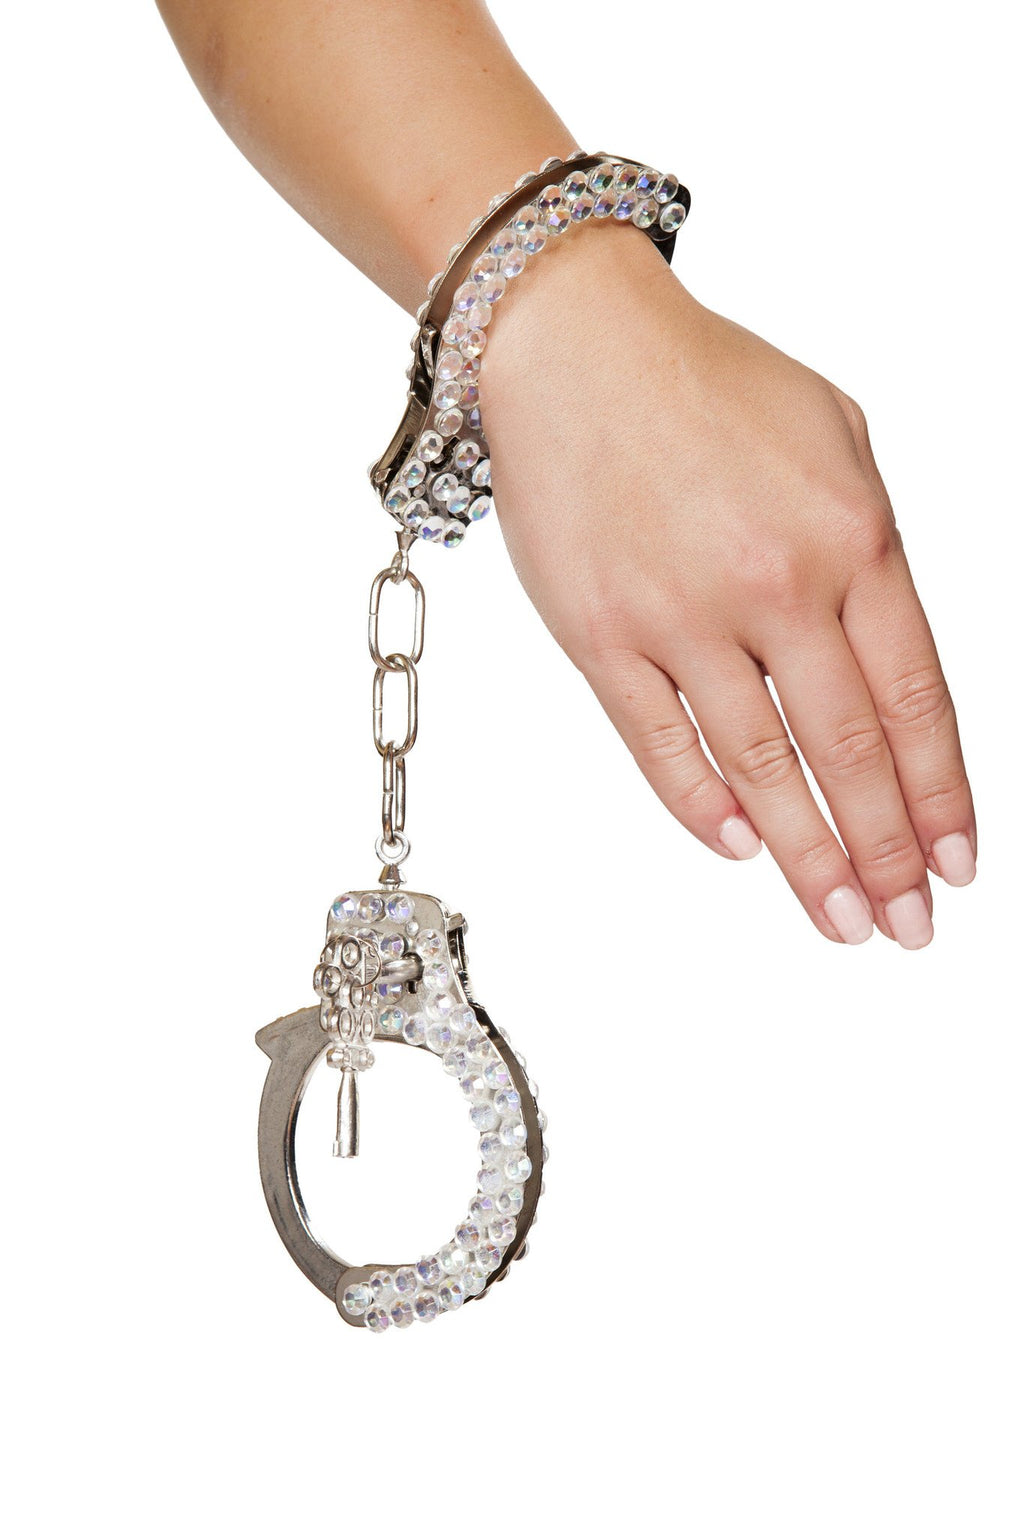 Silver Handcuffs with Rhinestones - PlaythingsMiami